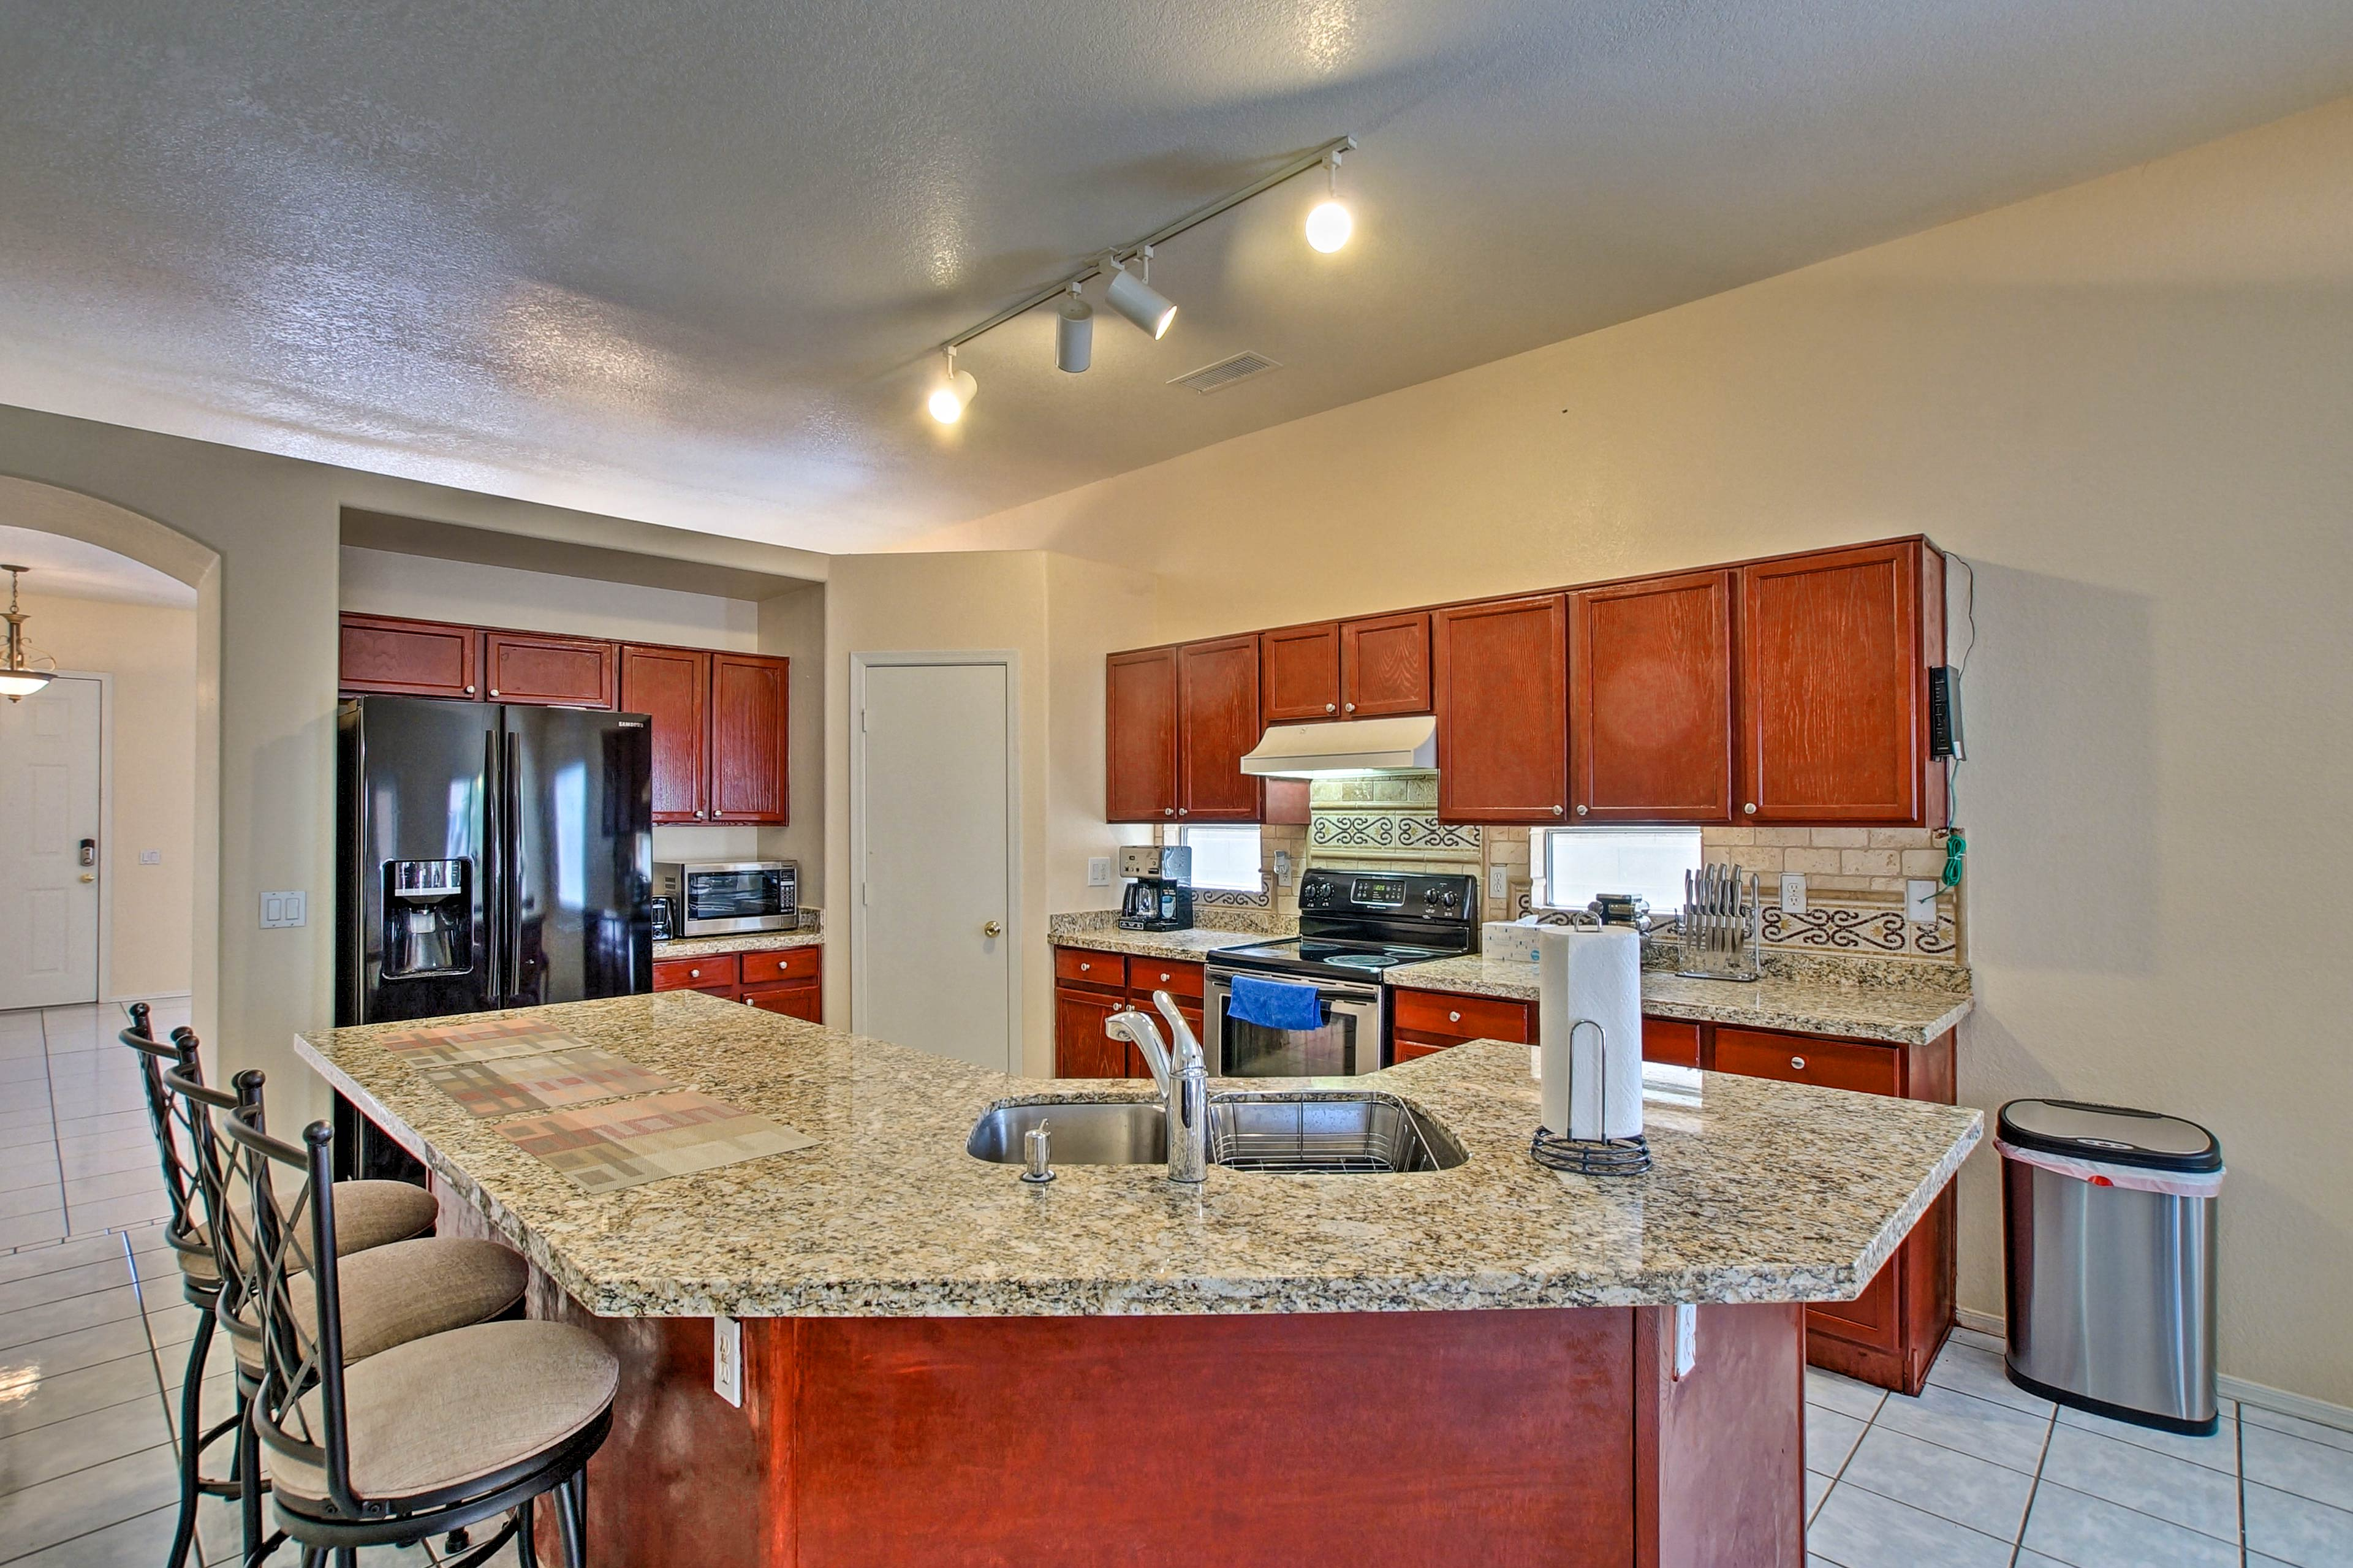 The kitchen has a 3-person breakfast bar and granite countertops.